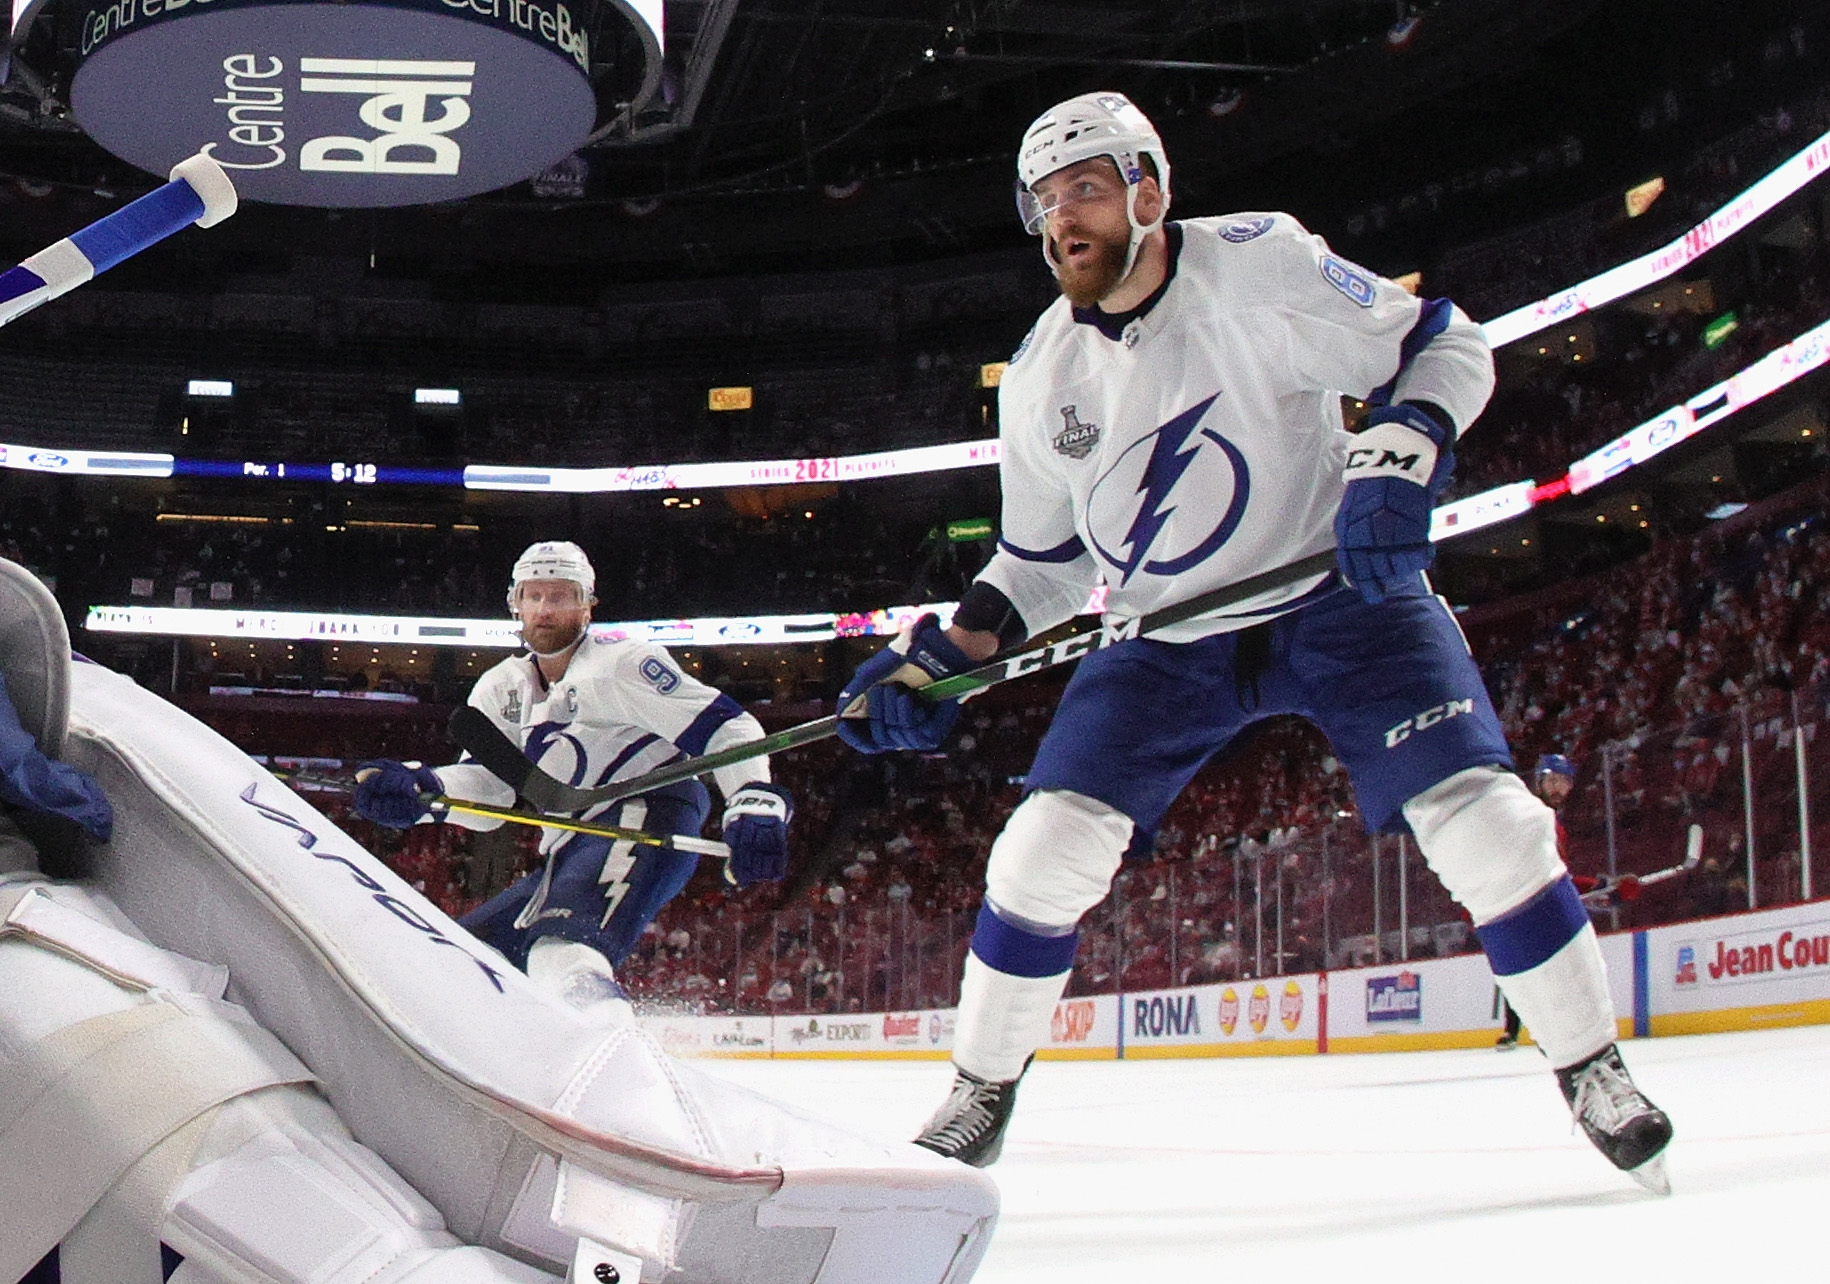 Erik Cernak #81 of the Tampa Bay Lightning skates against the Montreal Canadiens during Game Three of the 2021 NHL Stanley Cup Final at the Bell Centre on July 02, 2021 in Montreal, Quebec, Canada.